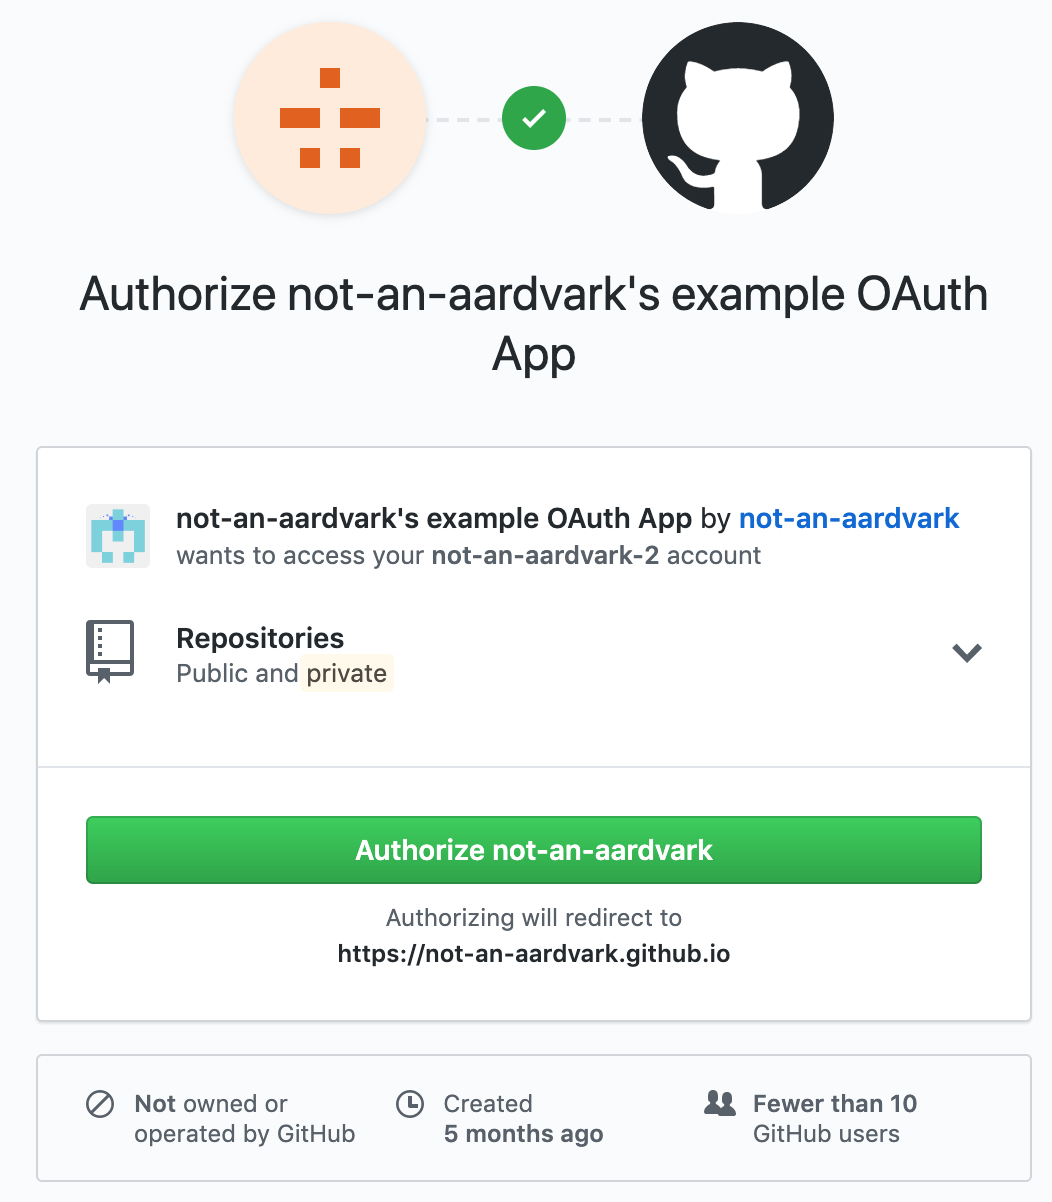 Screenshot of GitHub's OAuth authorization page. The page says that an OAuth app would like to access the user's GitHub account, and contains an 'Authorize' button.